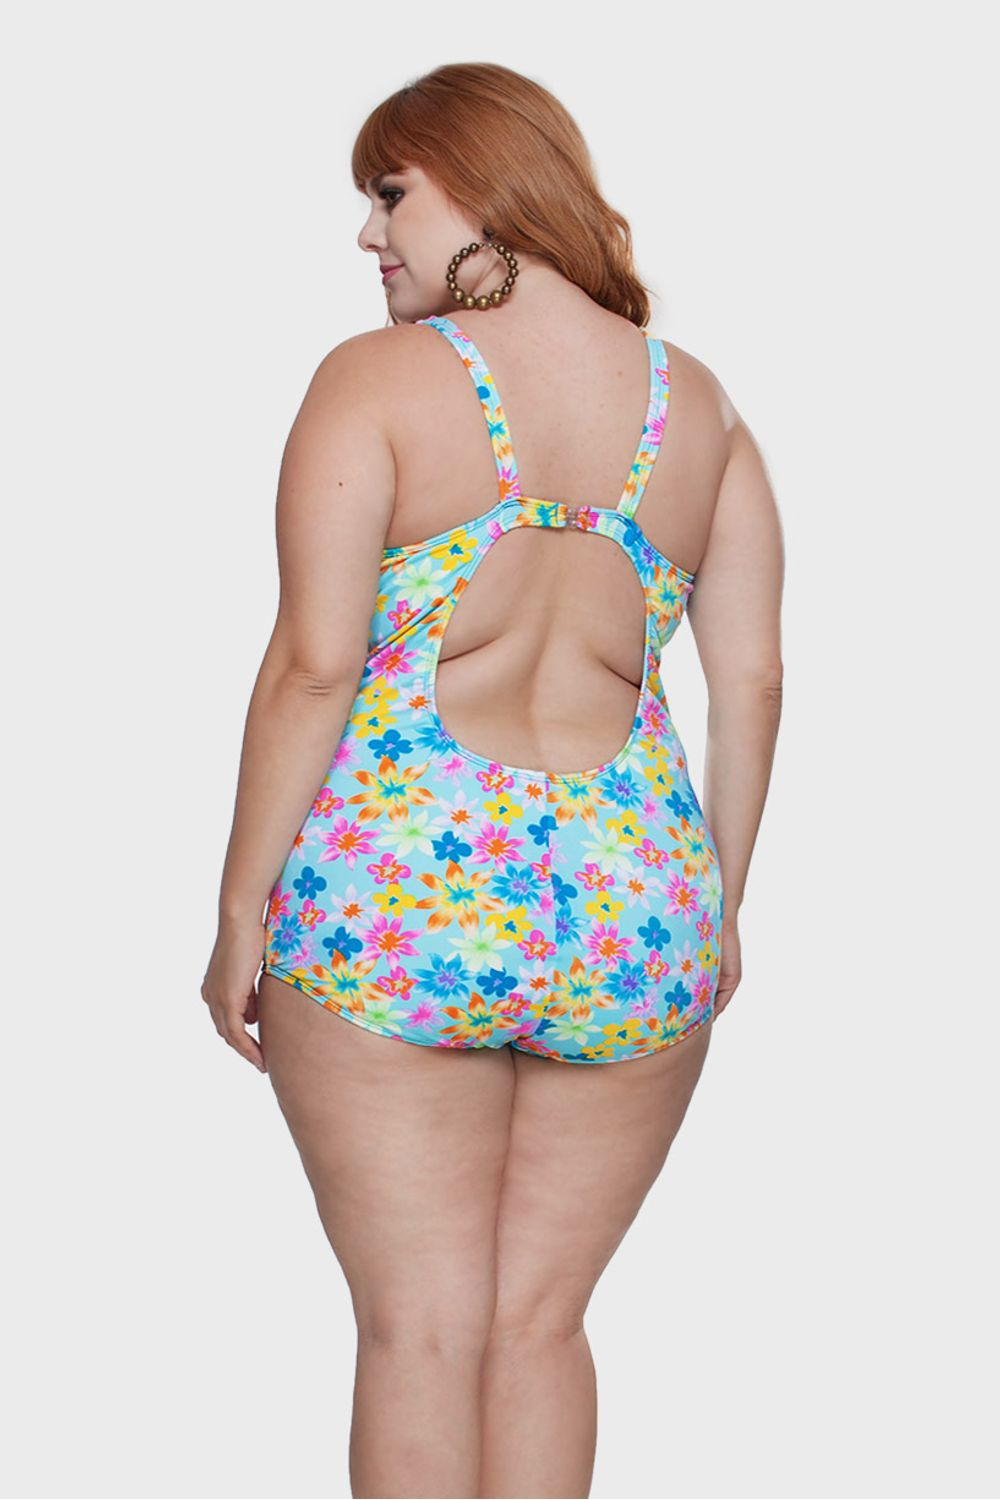 Maio-Miss-Havaiano-Plus-Size_T1